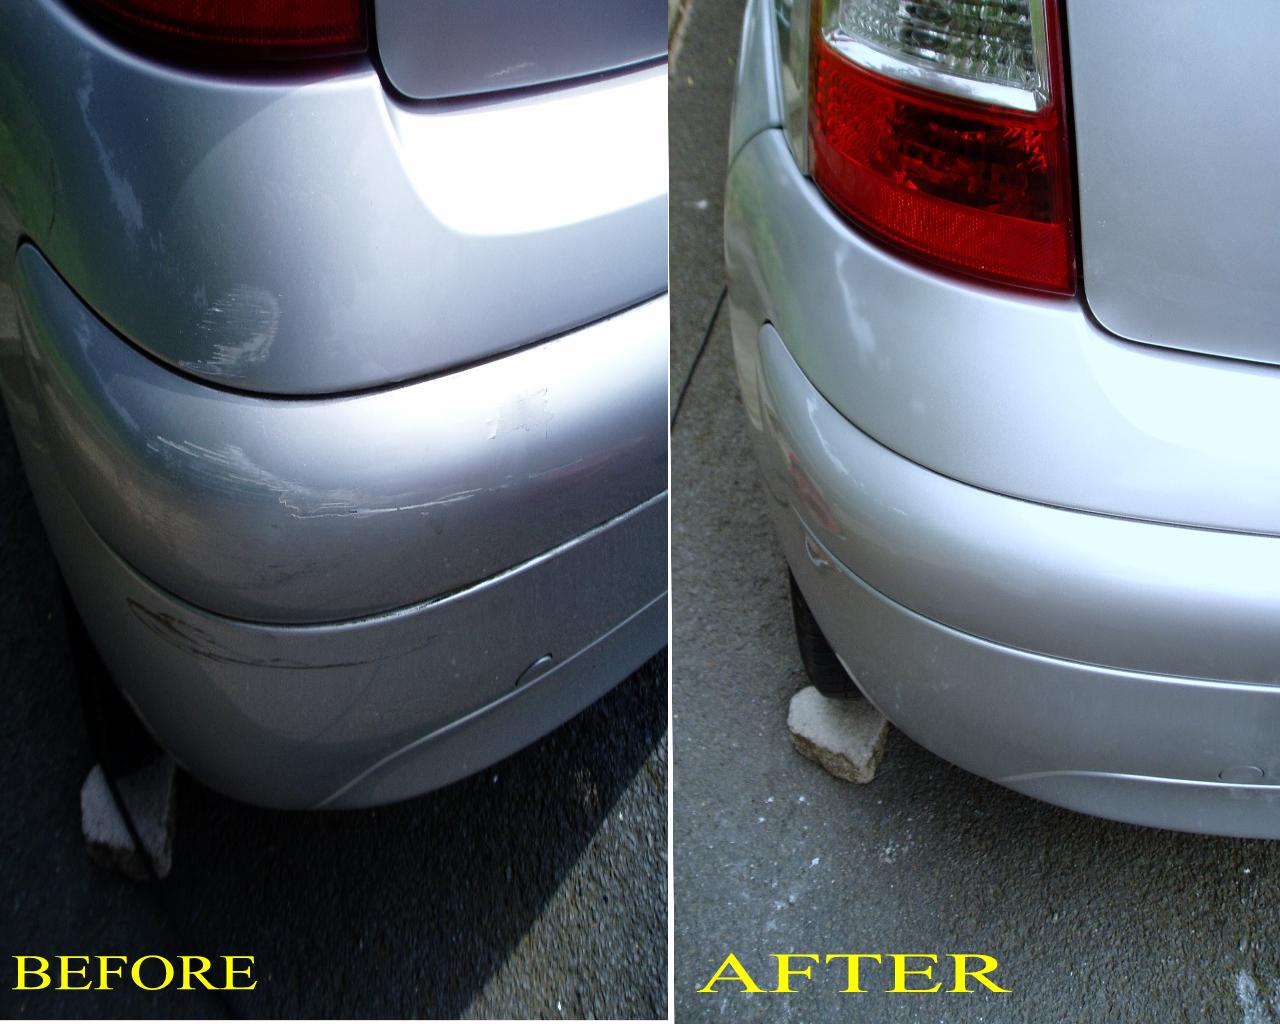 BUMPER SCUFF REPAIRS IN BIRMINGHAM,SOLIHULL,WORCESTER,TELFORD,WESTMIDLANDS BUMPER SCUFFS ARE REPAIRED ON SITE WITHIN A FEW HOURS AND READY TO DRIVE AWAY AS SOON AS THE BUMPER SCUFF REPAIR IS FINISHED GIVE DEBBIE A CALL FOR A QUALITY BUMPER SCUFF REPAIR.